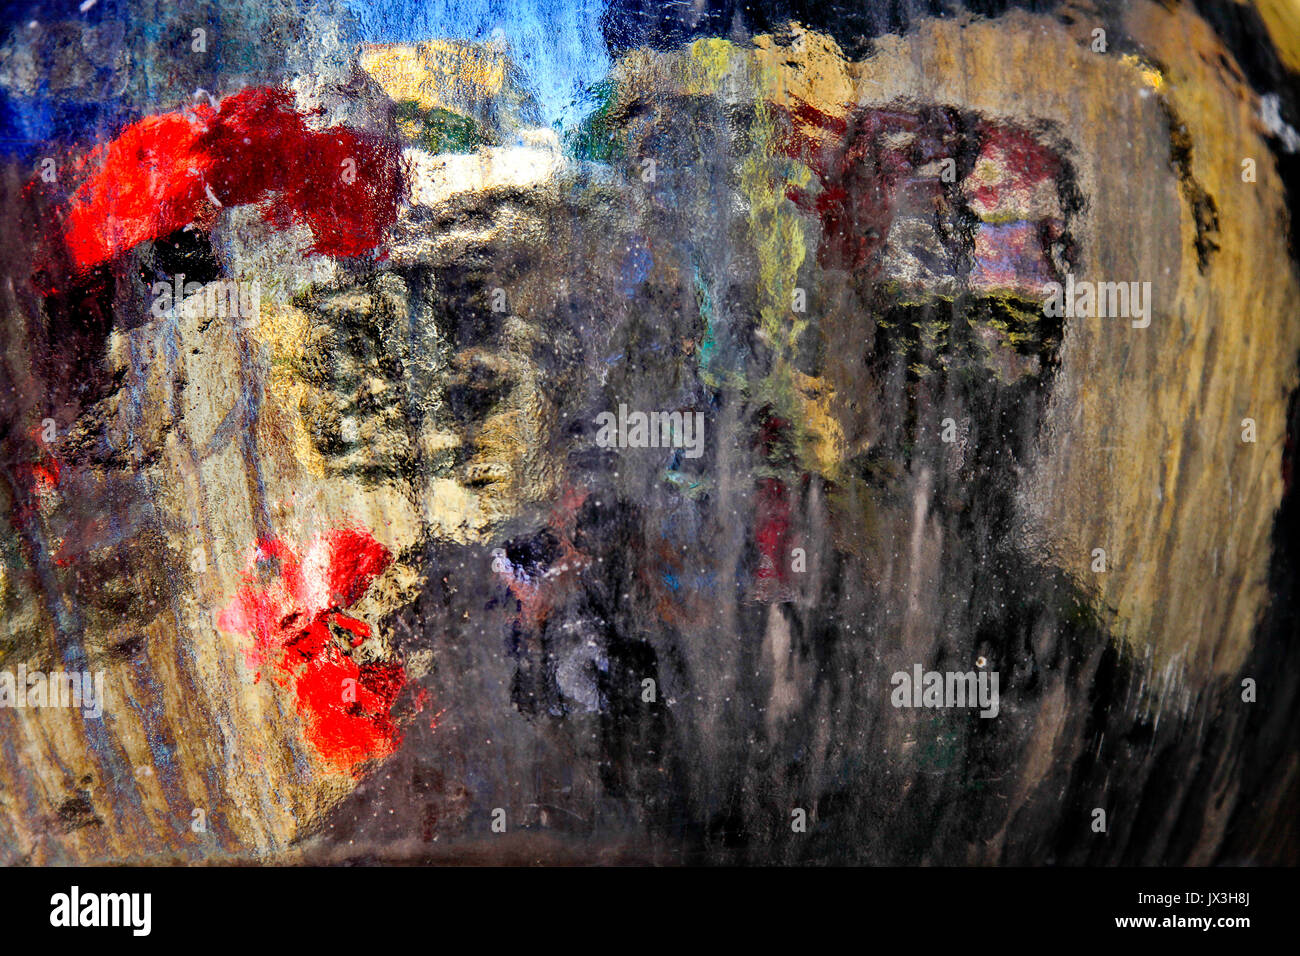 defocused outdoors Abstract photographed through wet glass - Stock Image